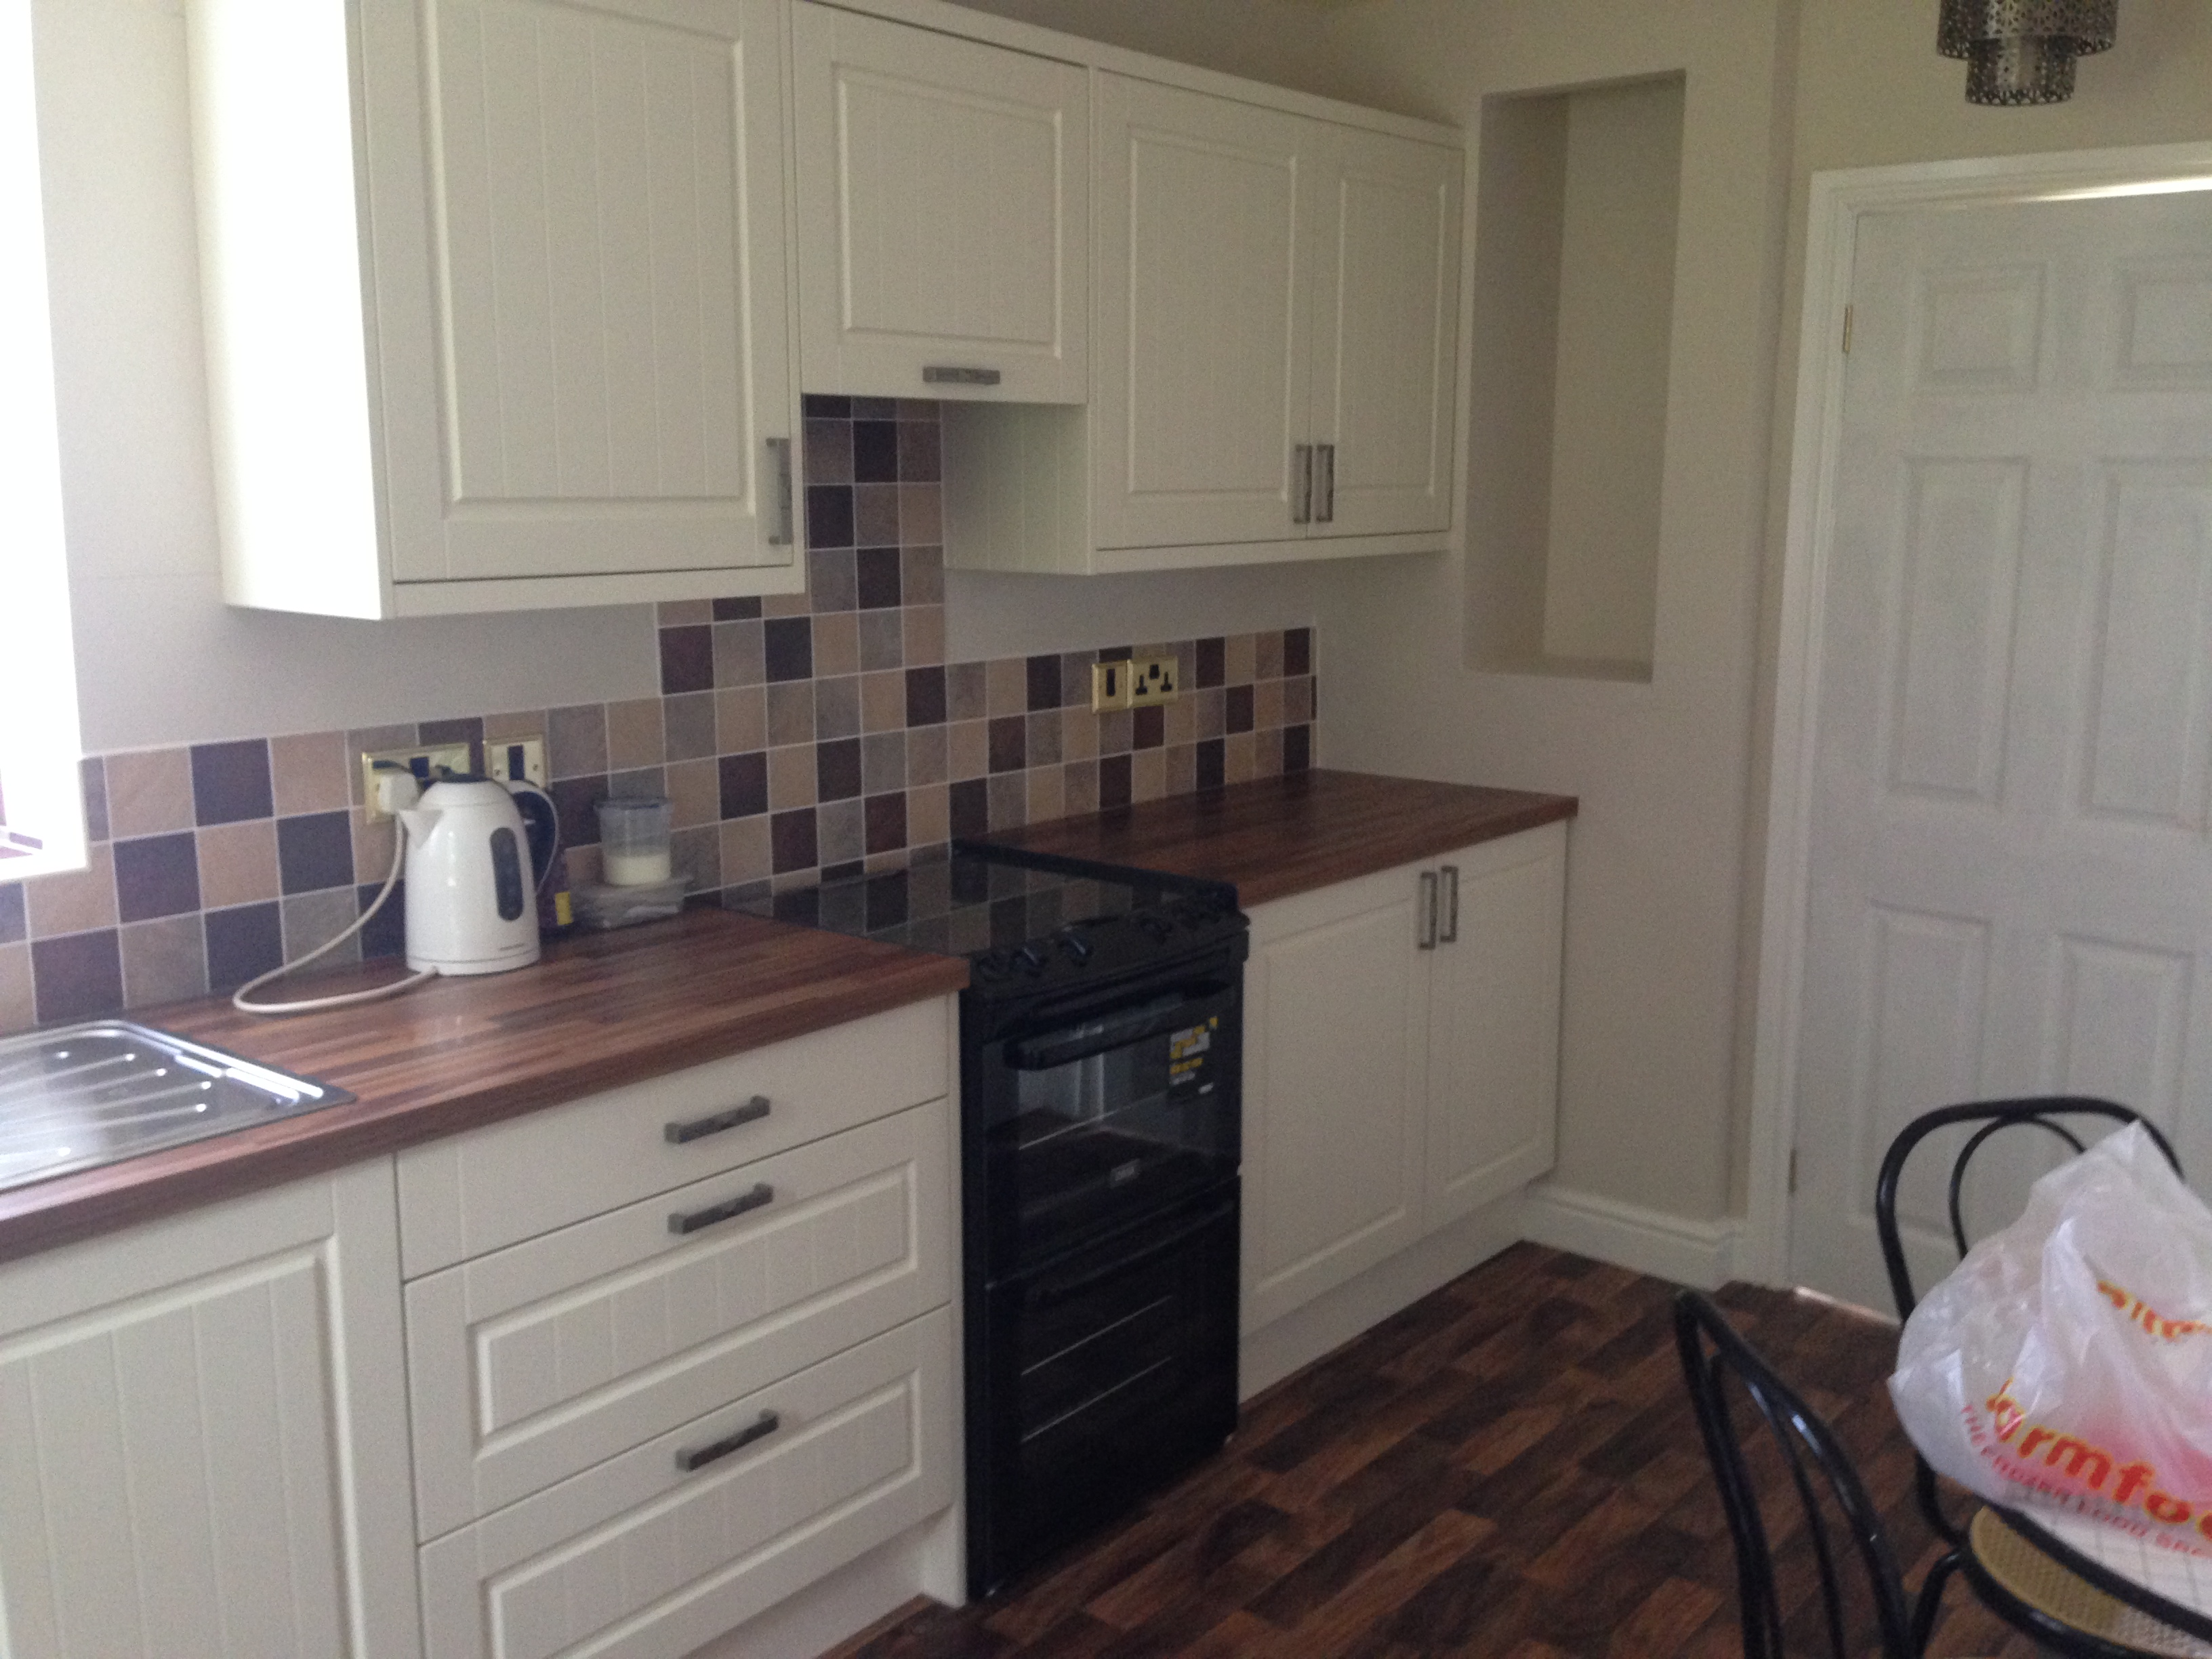 Coventry kitchens and bathrooms - Affordable Home Improvements Fitted Kitchen